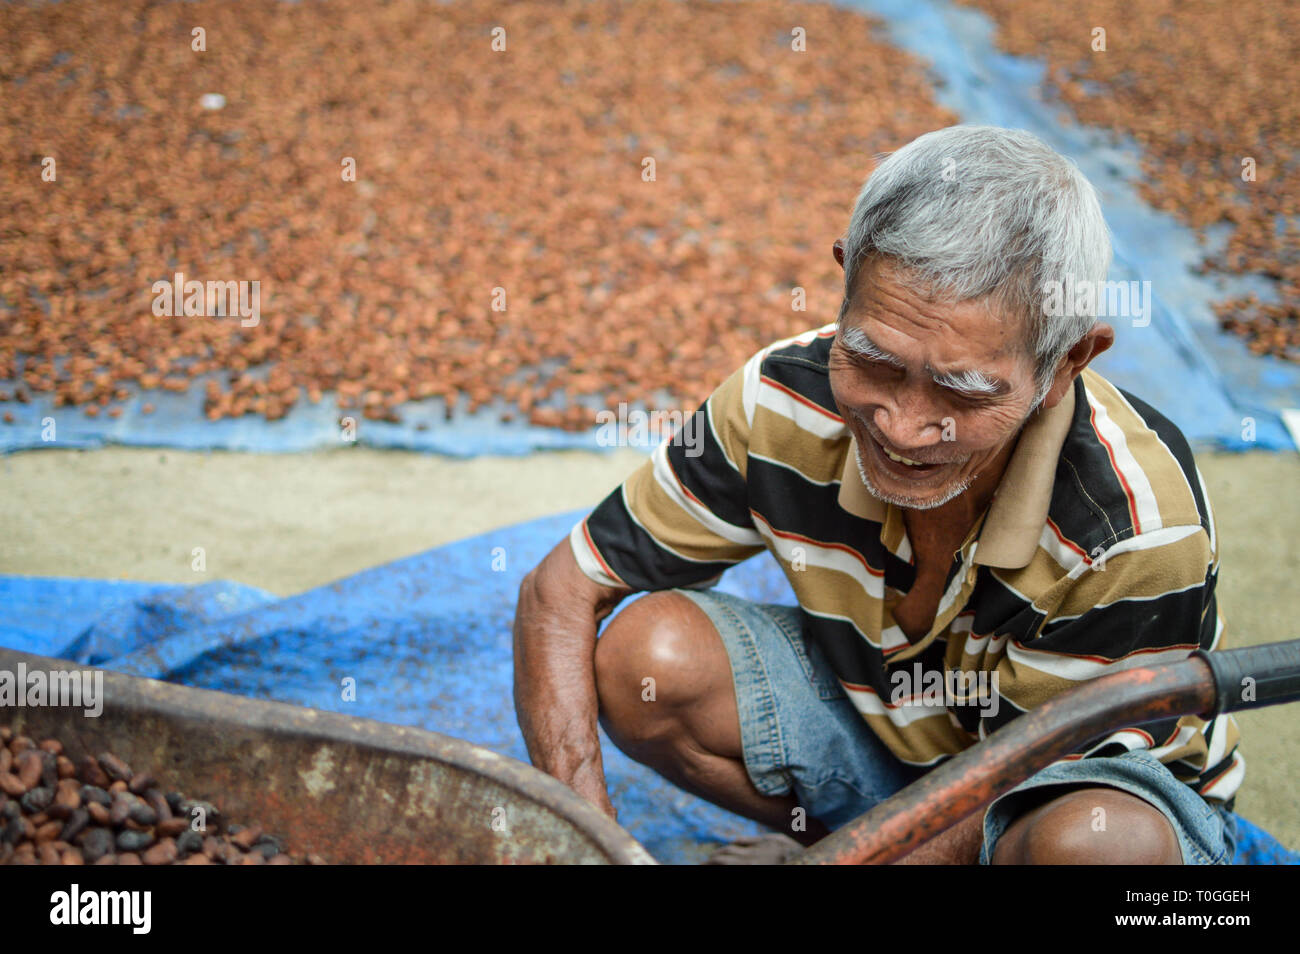 Sumatra, Indonesia – January 14, 2018: Local farmer sundries the harvest of his cocoa beans to prepare them for sale, in Lake Toba, Sumatra, Indonesia Stock Photo